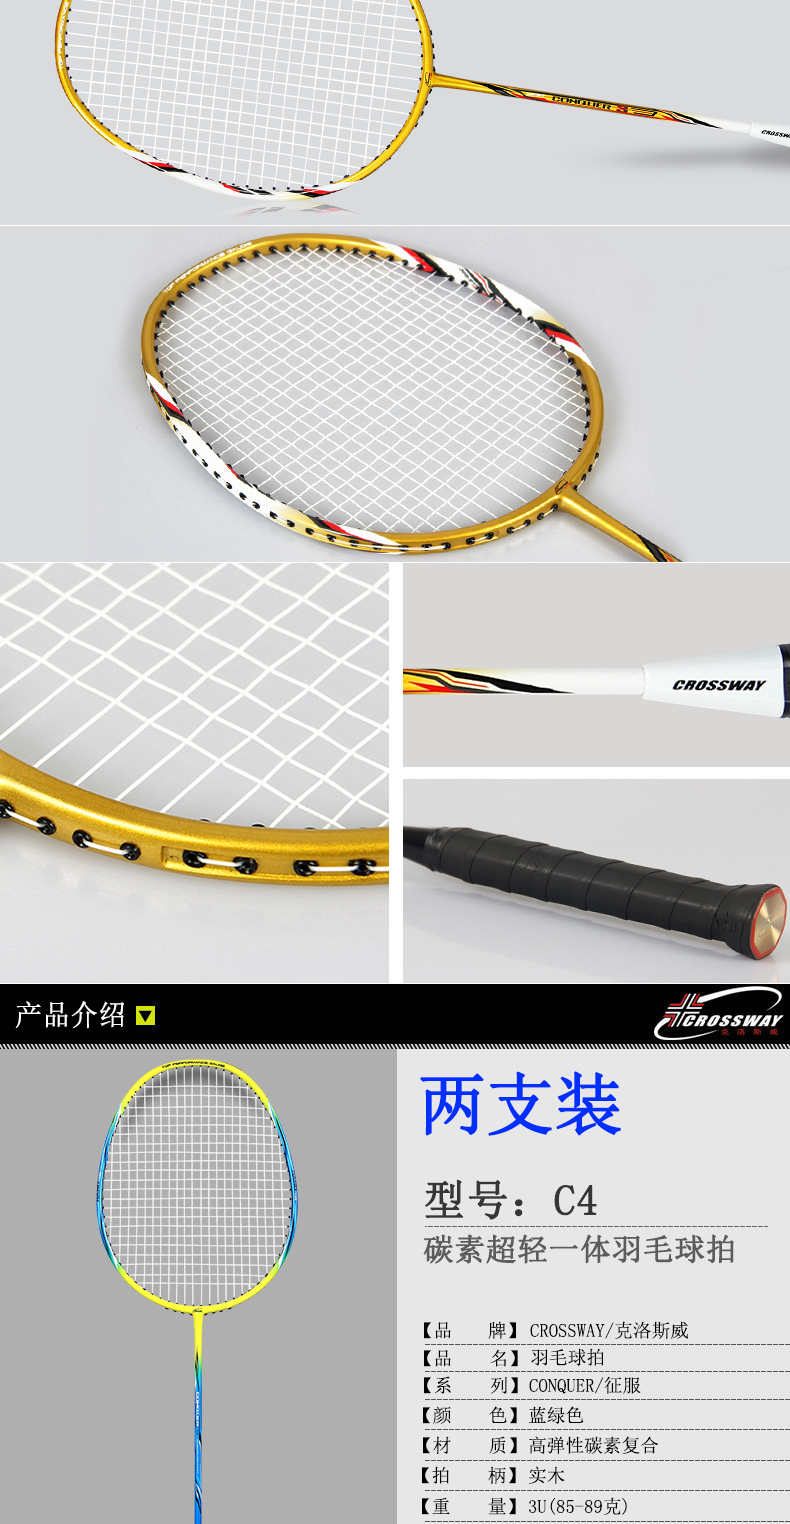 Crossway 2Pcs Best Doubles Match Badminton Rackets Carbon Smash Championships Shuttlecock Speedminton Racquets Equipment Kit Set 9